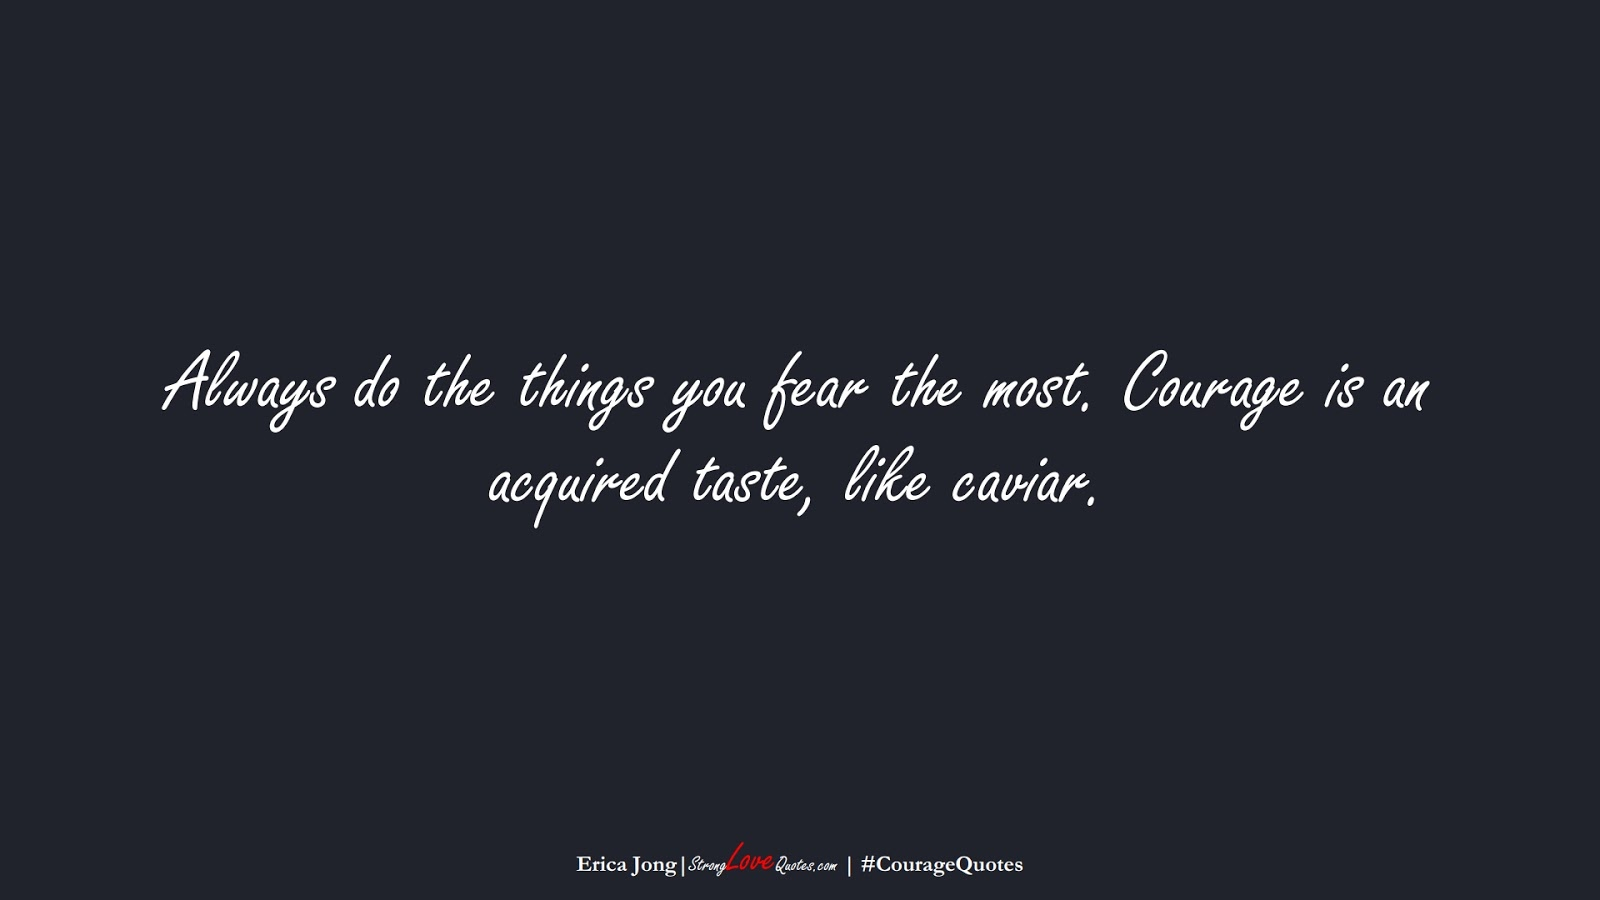 Always do the things you fear the most. Courage is an acquired taste, like caviar. (Erica Jong);  #CourageQuotes